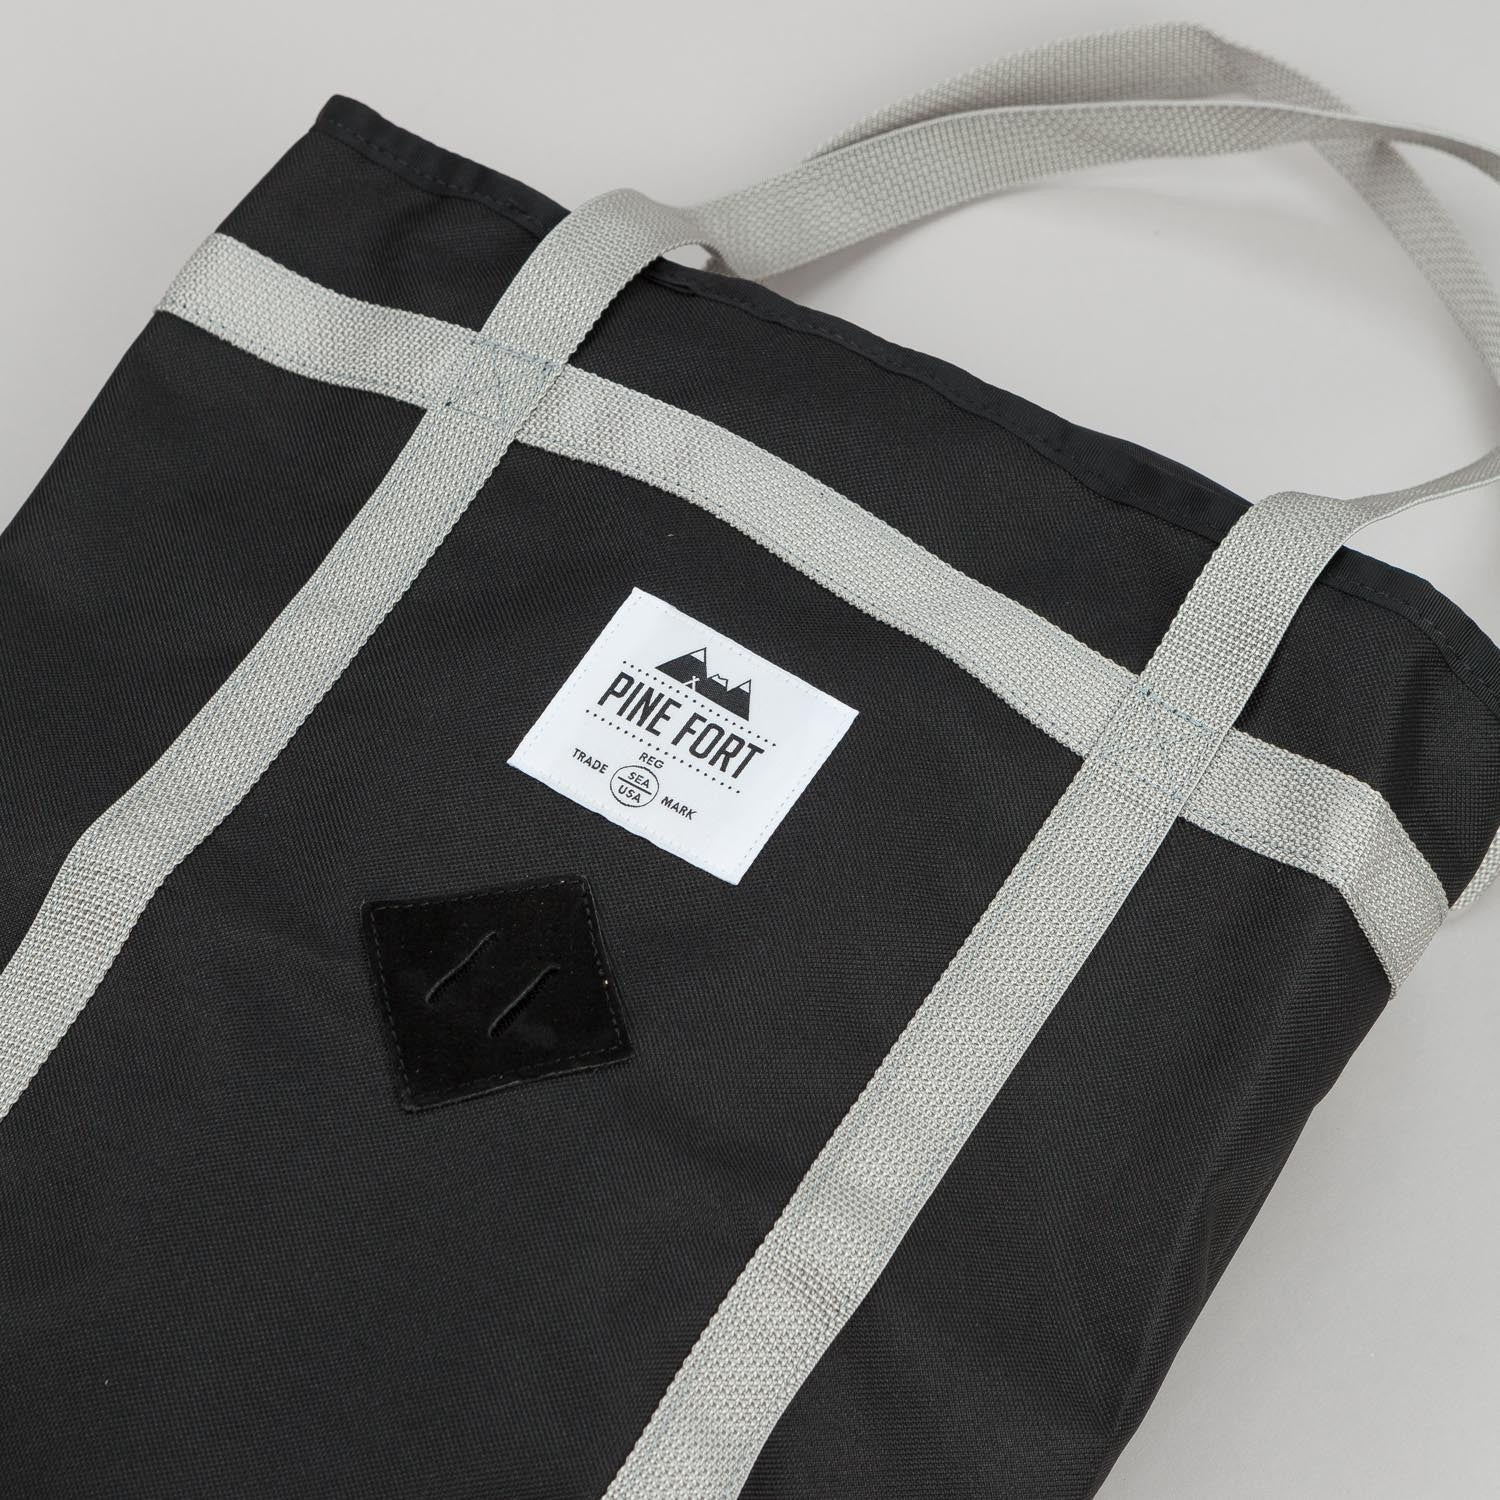 Pine Fort Climbing Tote Black / Silver